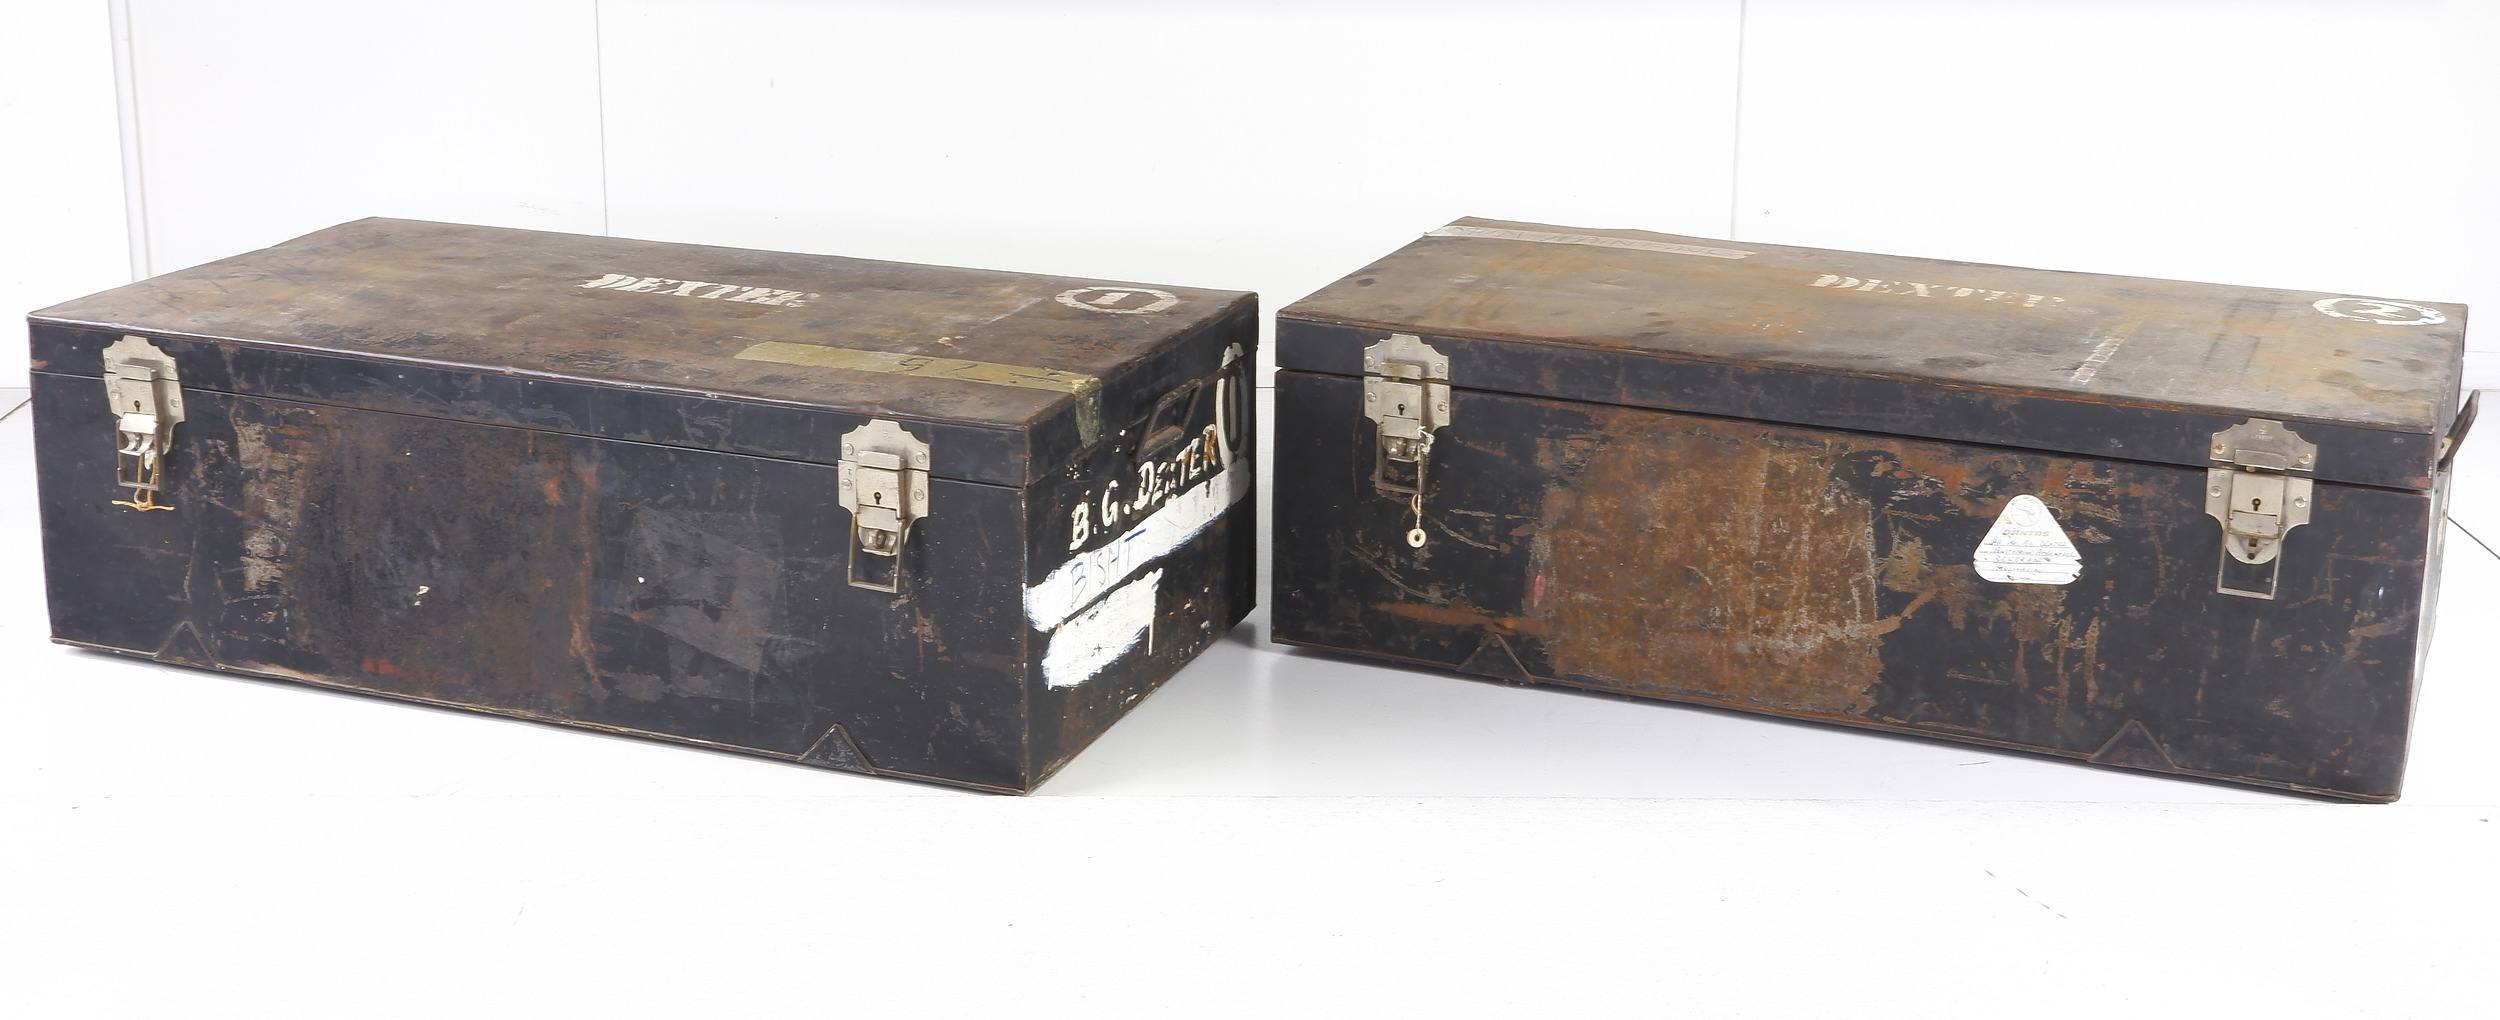 'Two Large Ex Diplomatic Metal Trunks'